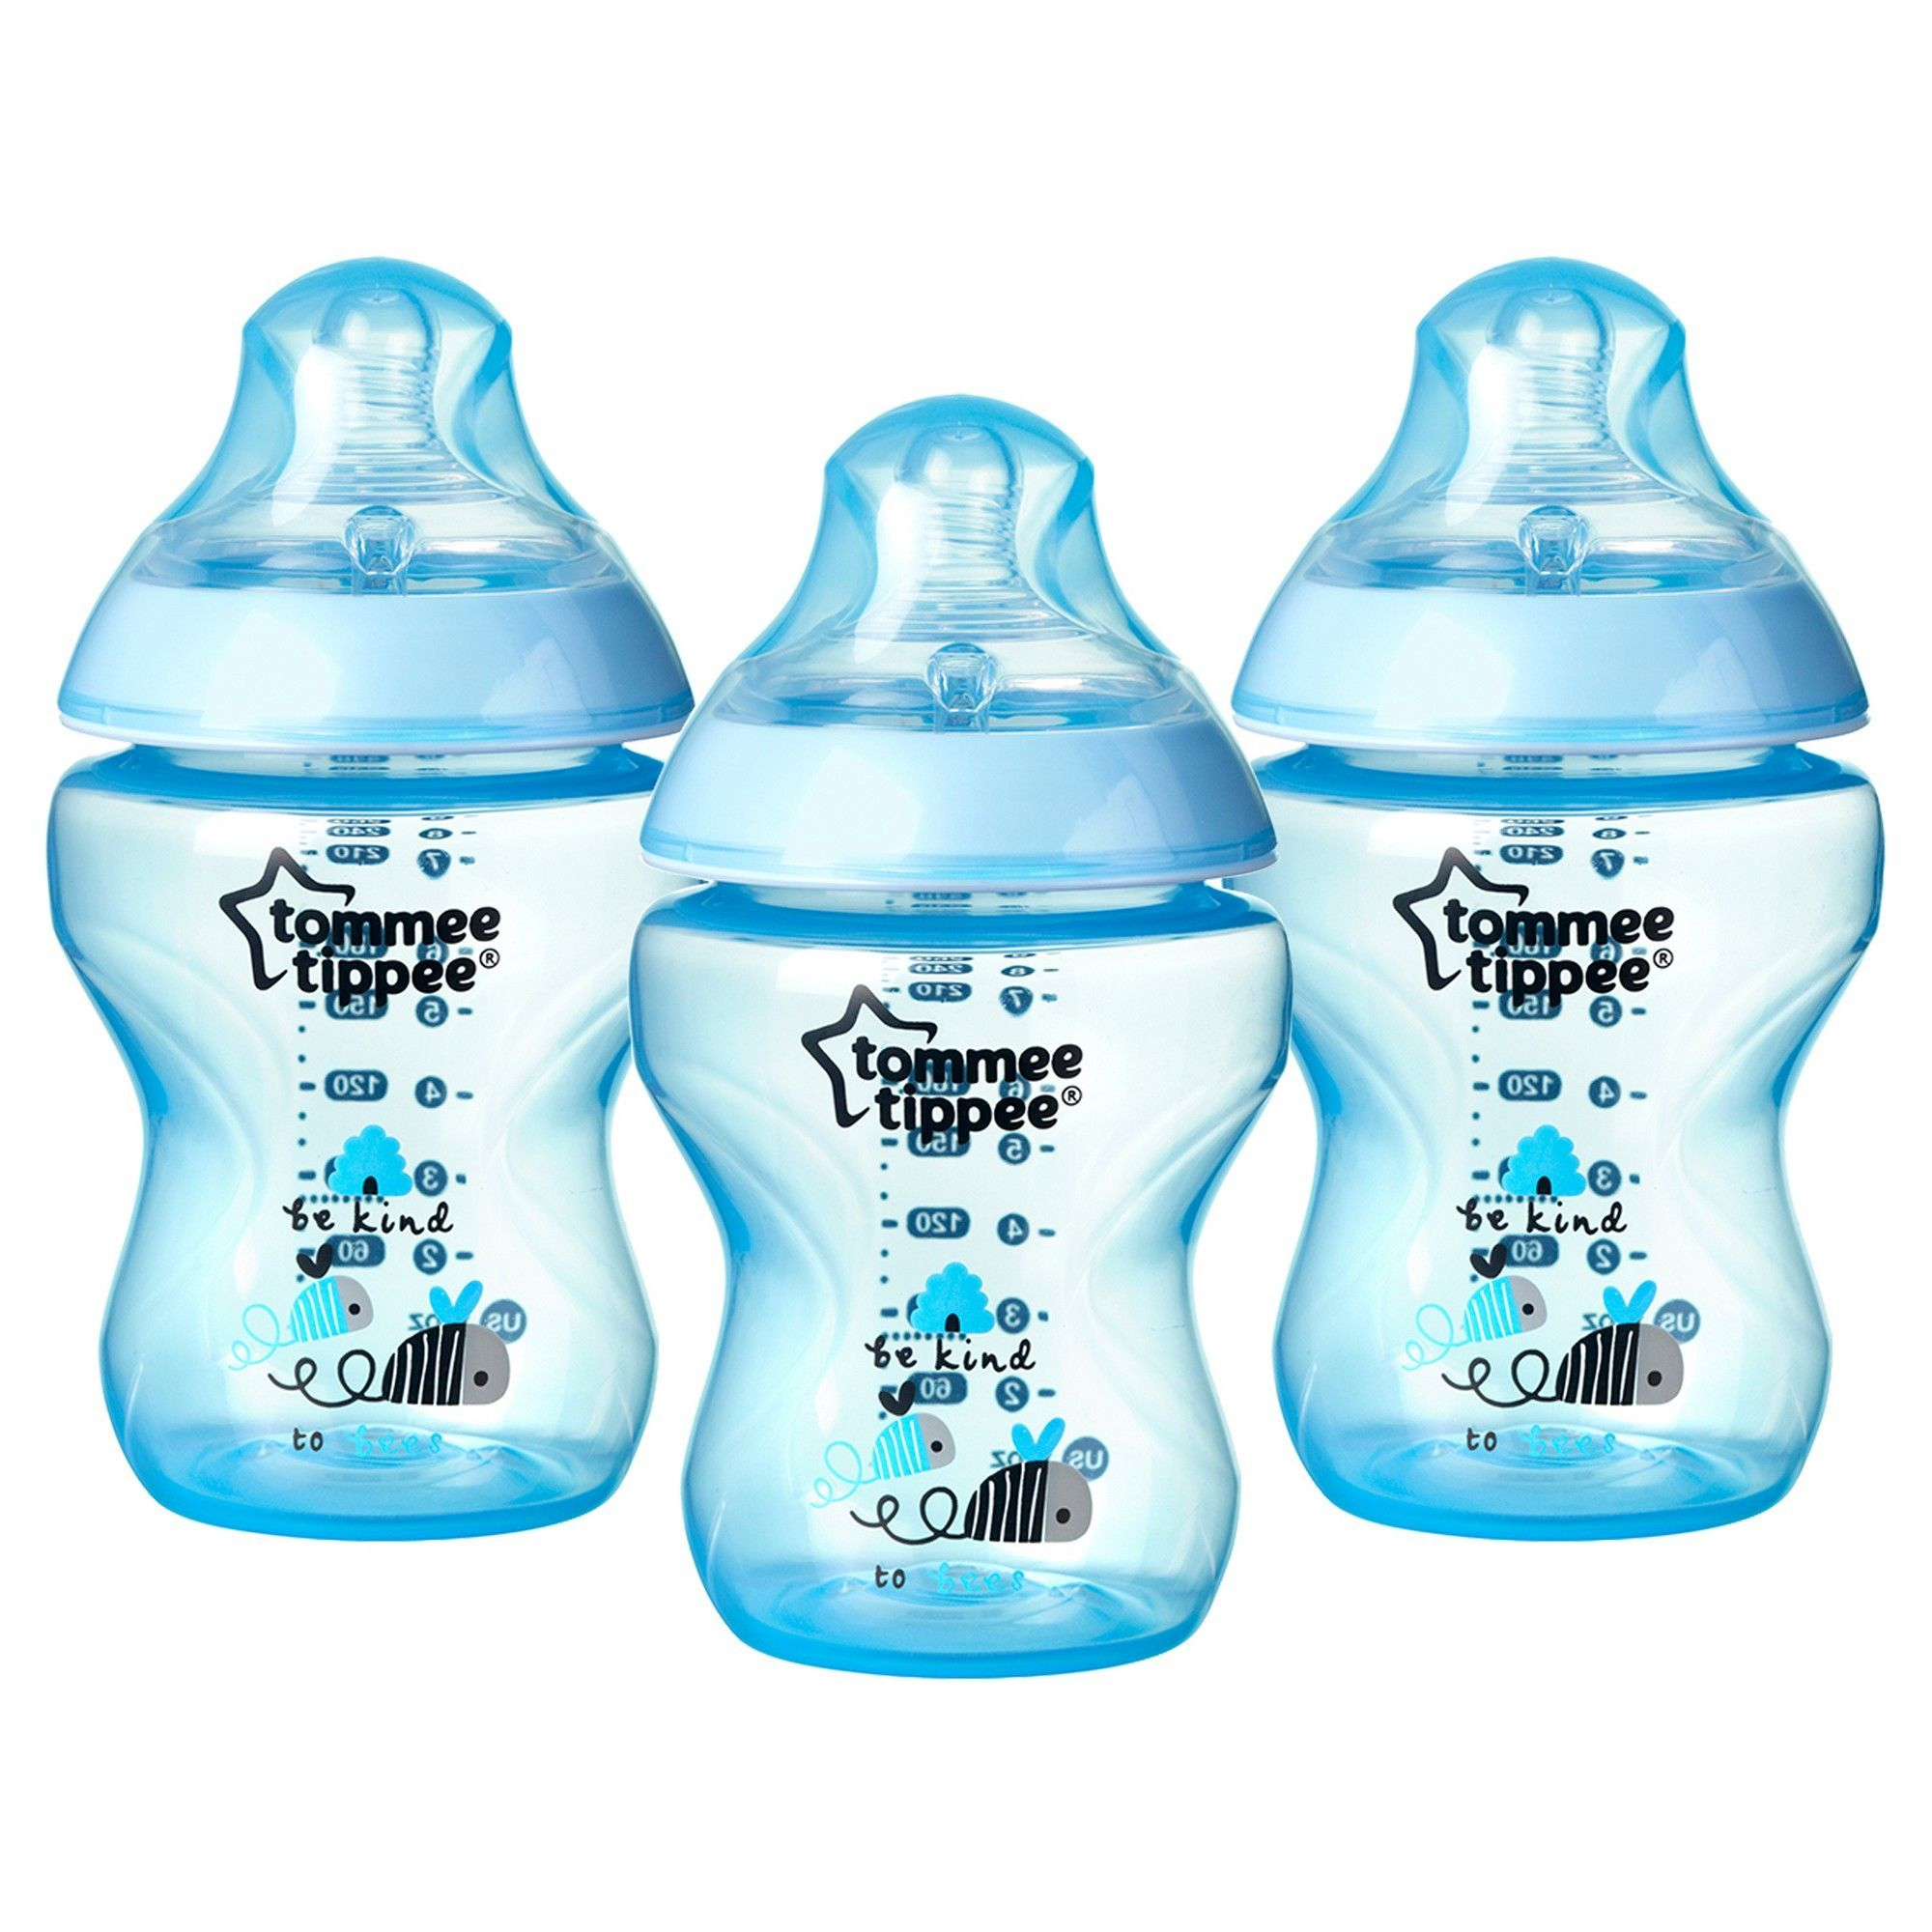 Tommee Tippee Pink Decorated Bottles Tommee Tippee Closer To Nature Blue Bottle 3 Pk 9 Oz Bottle And